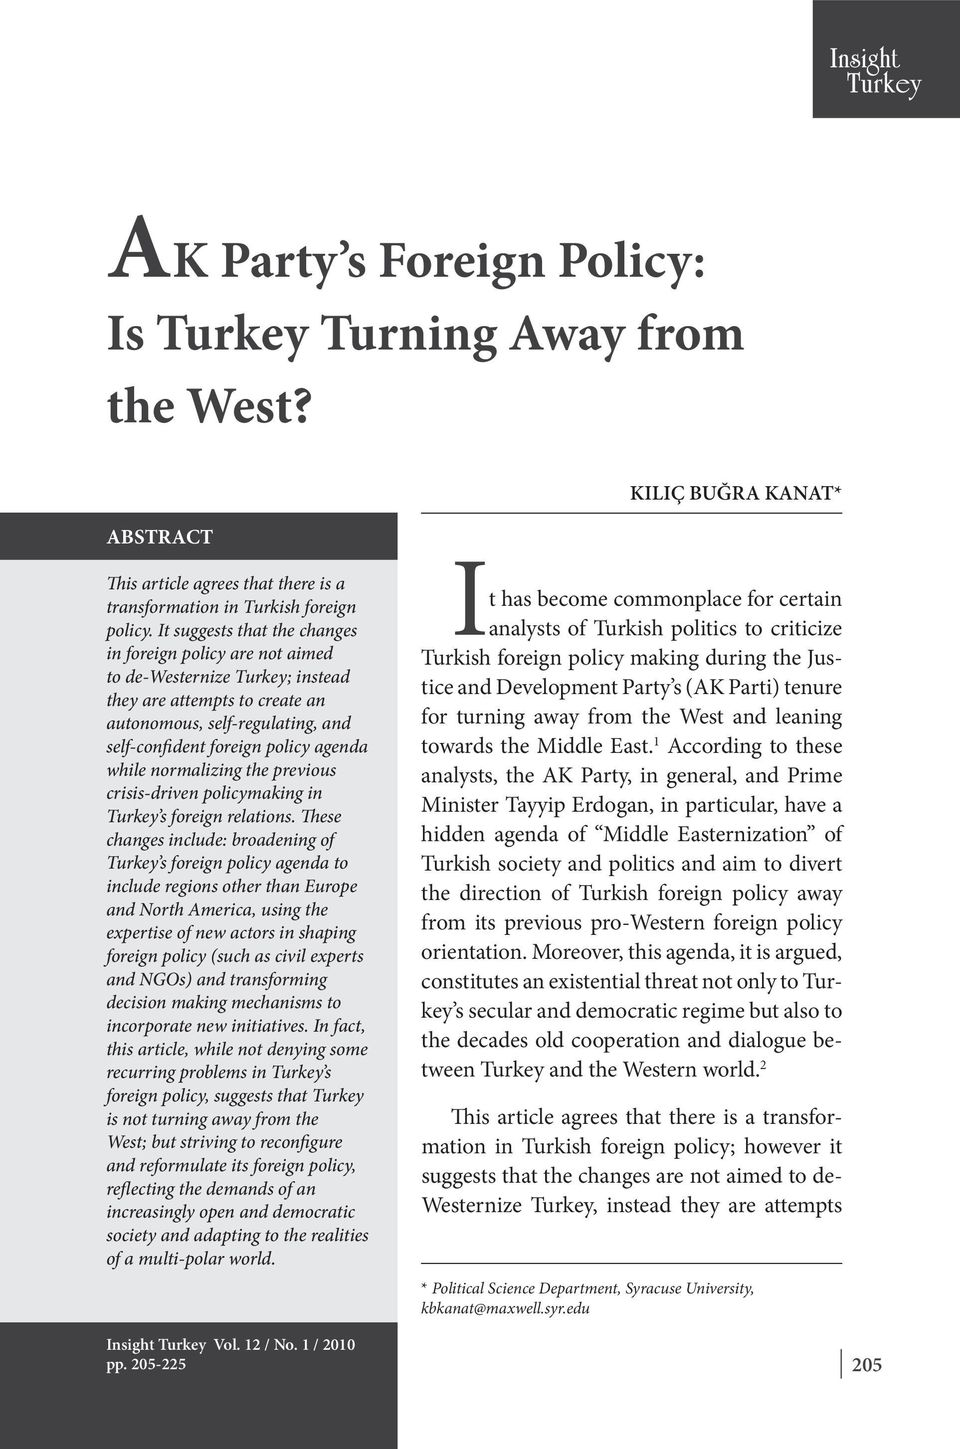 while normalizing the previous crisis-driven policymaking in Turkey s foreign relations.